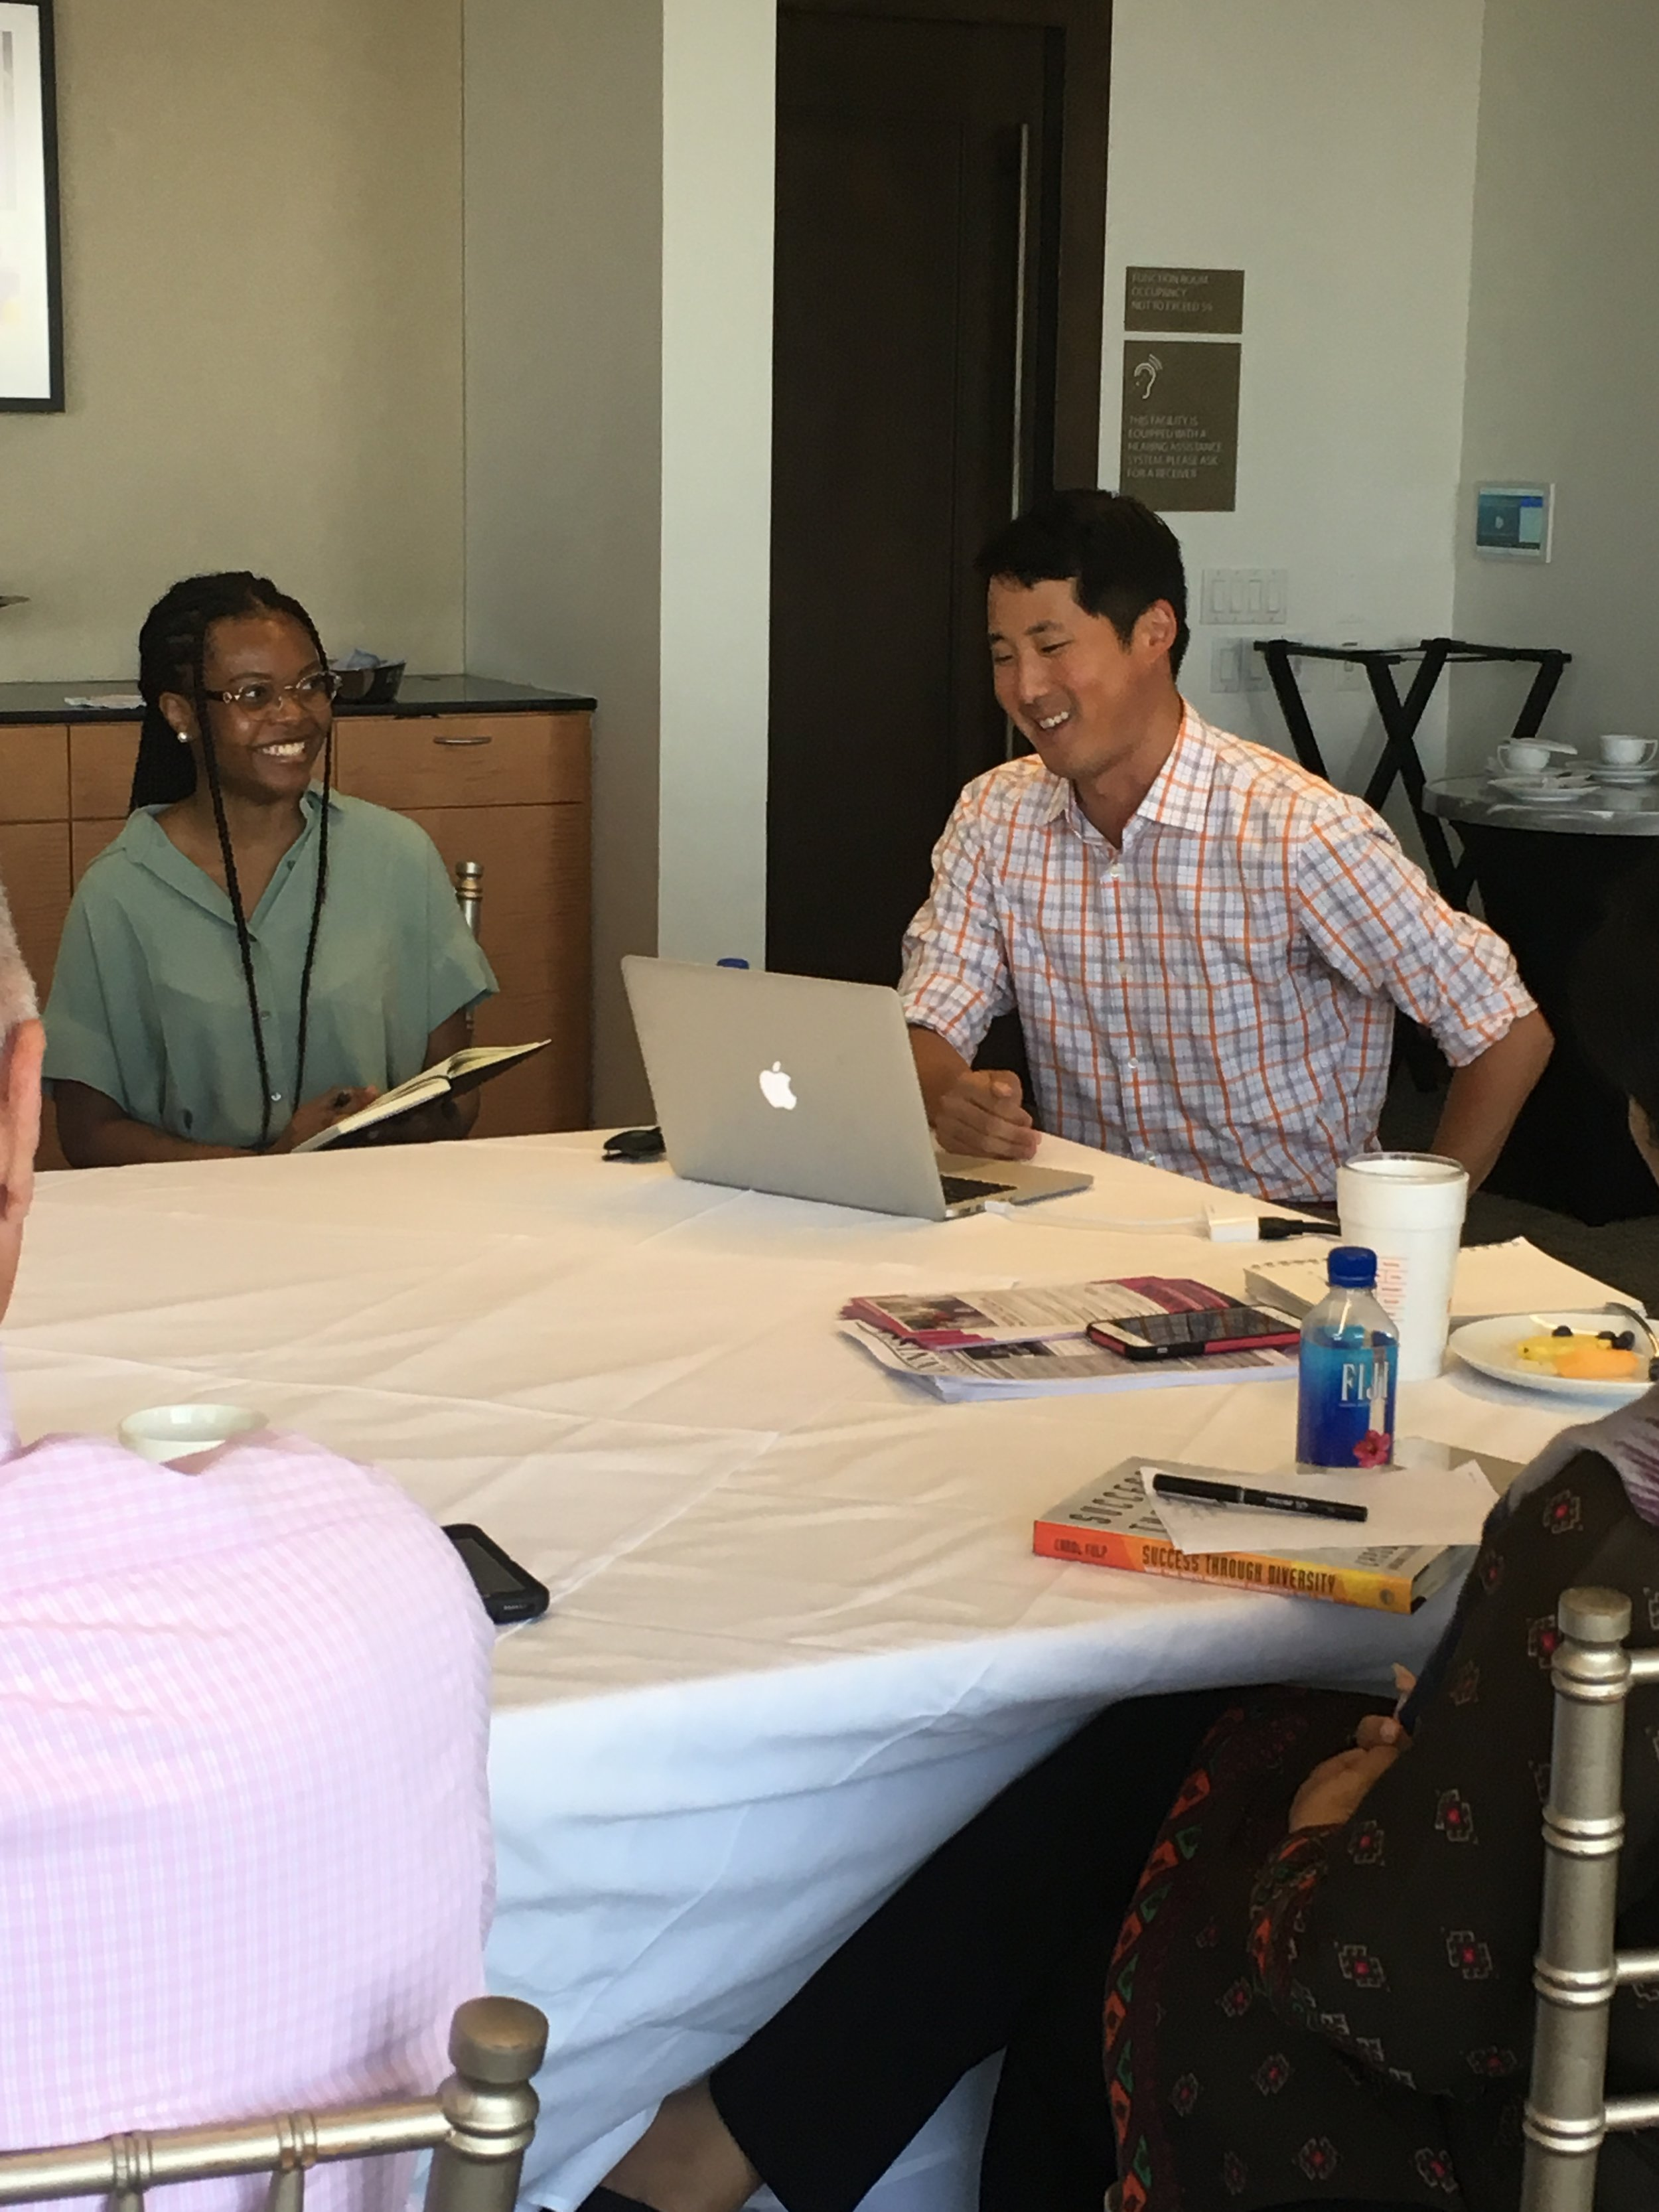 Justin Kang, VP of the Greater Boston Chamber of Commerce and Founder of City Awake  shares his presentation and findings on City Awake's initiatives  with CAP fellows